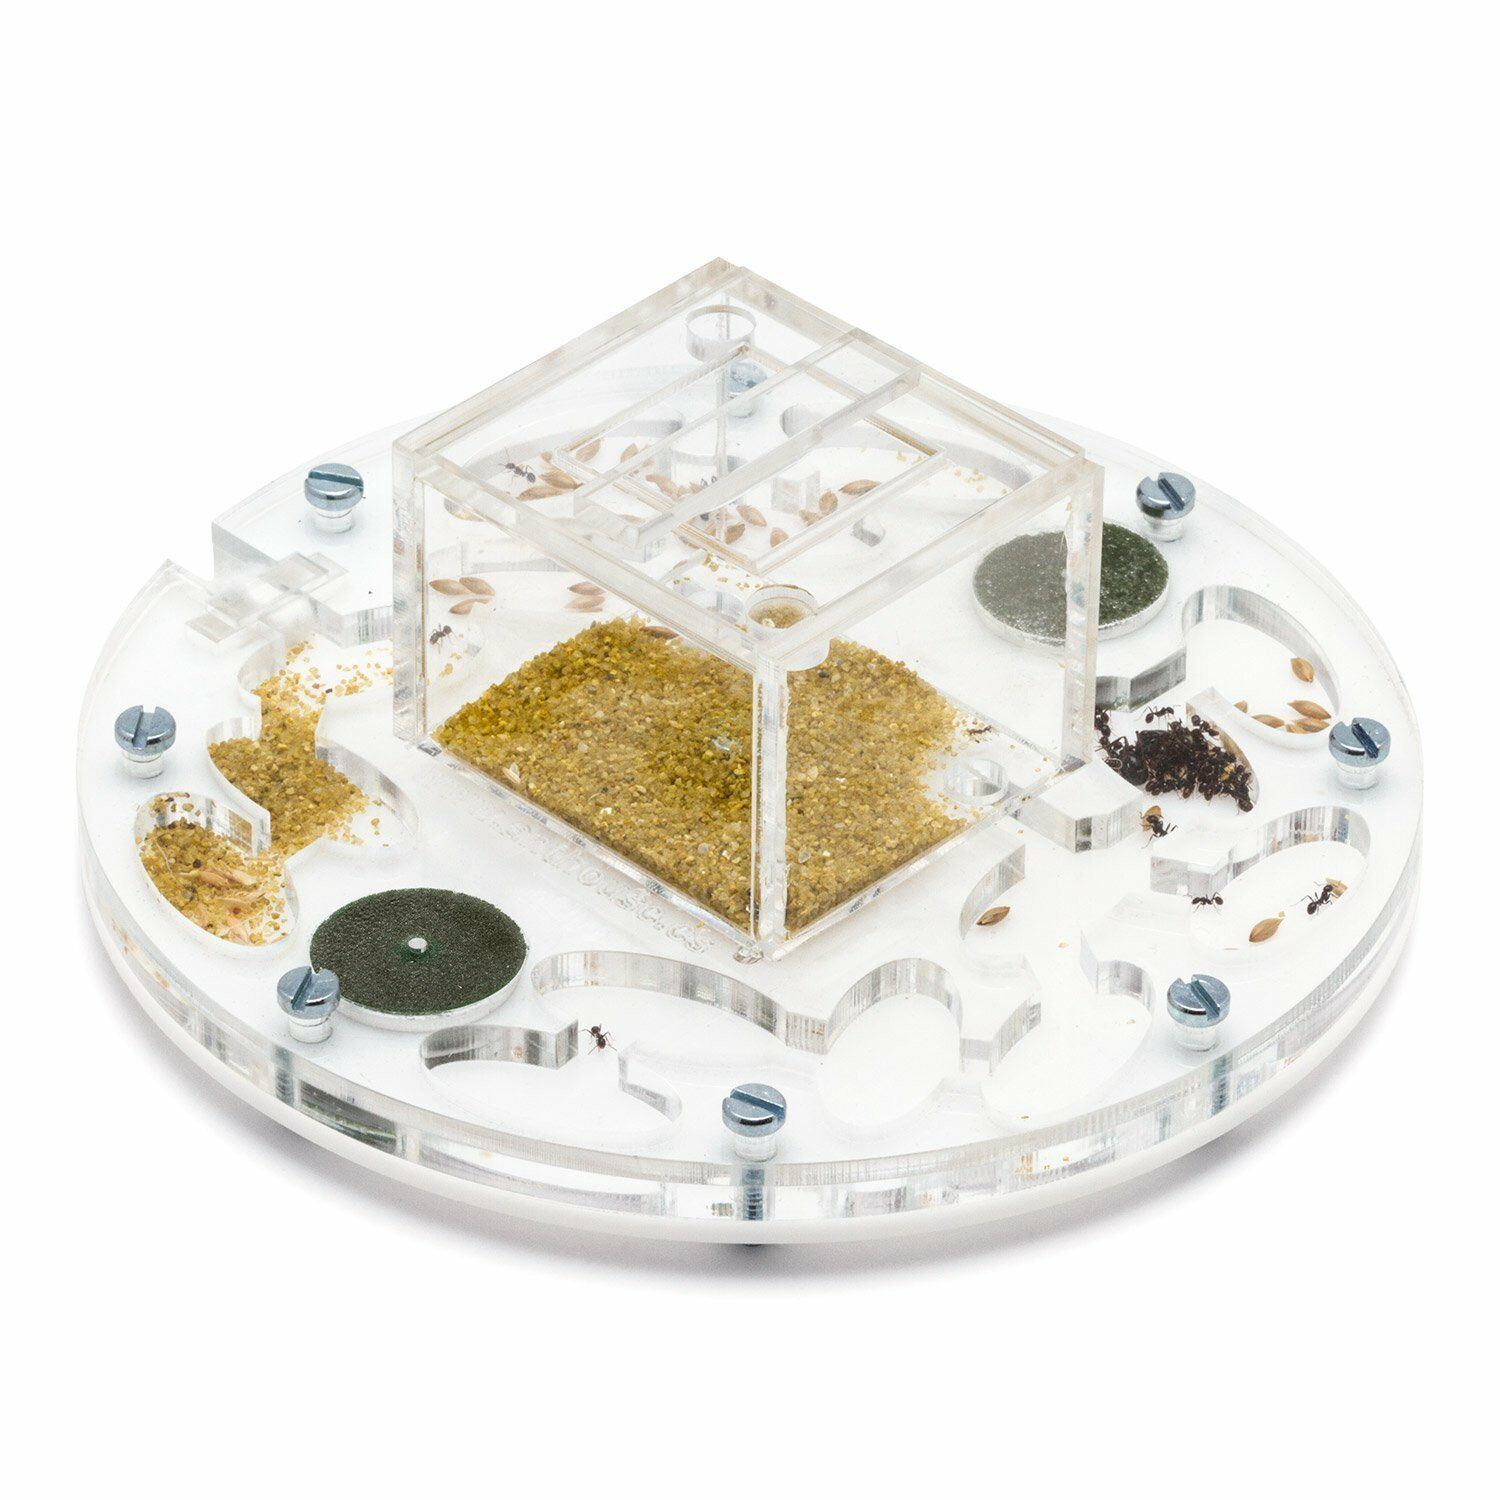 Ant Farm Educational Kit Circle 1515x1cms (Anthill, Formicarium, Educational)